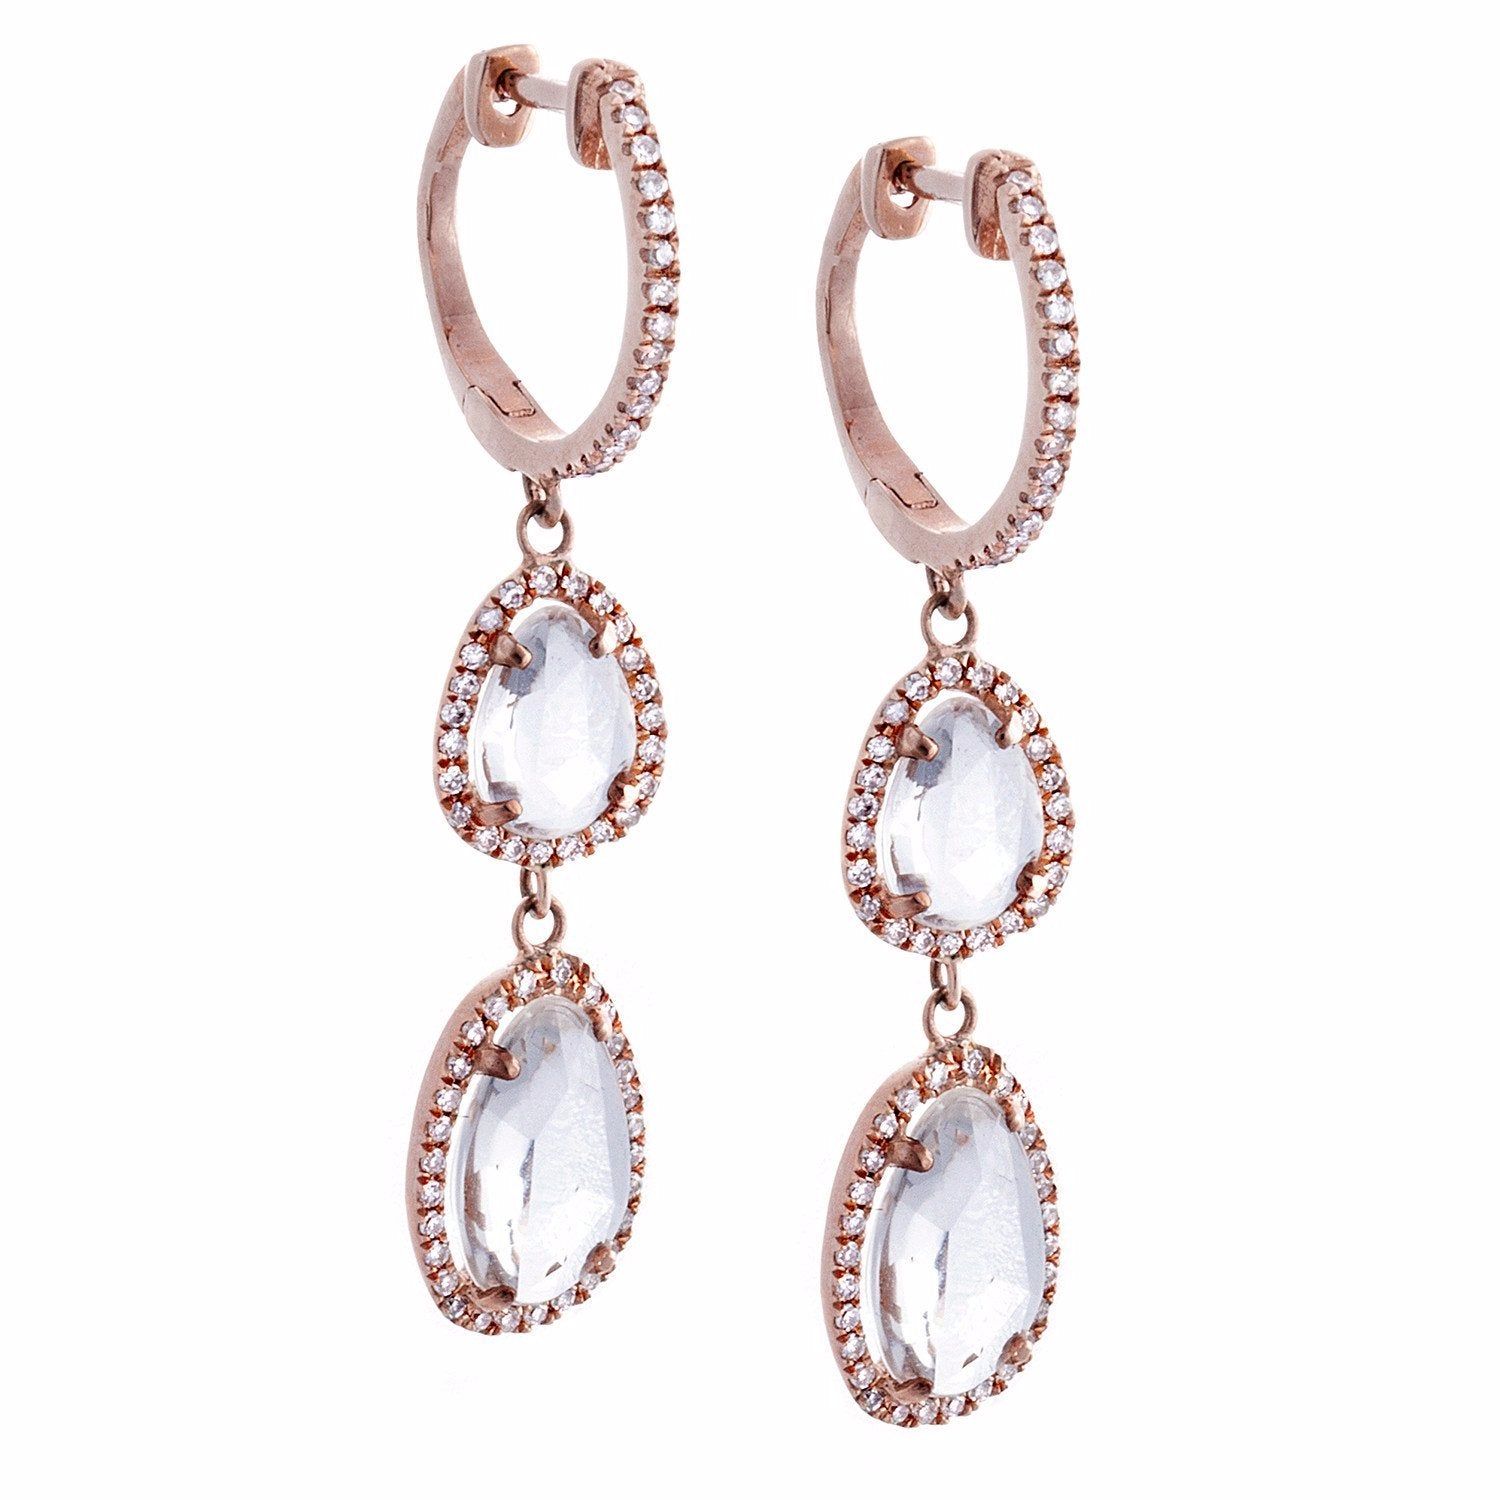 White Sapphire, Pavé Diamond & 14K Rose Gold Double Teardrop Earrings